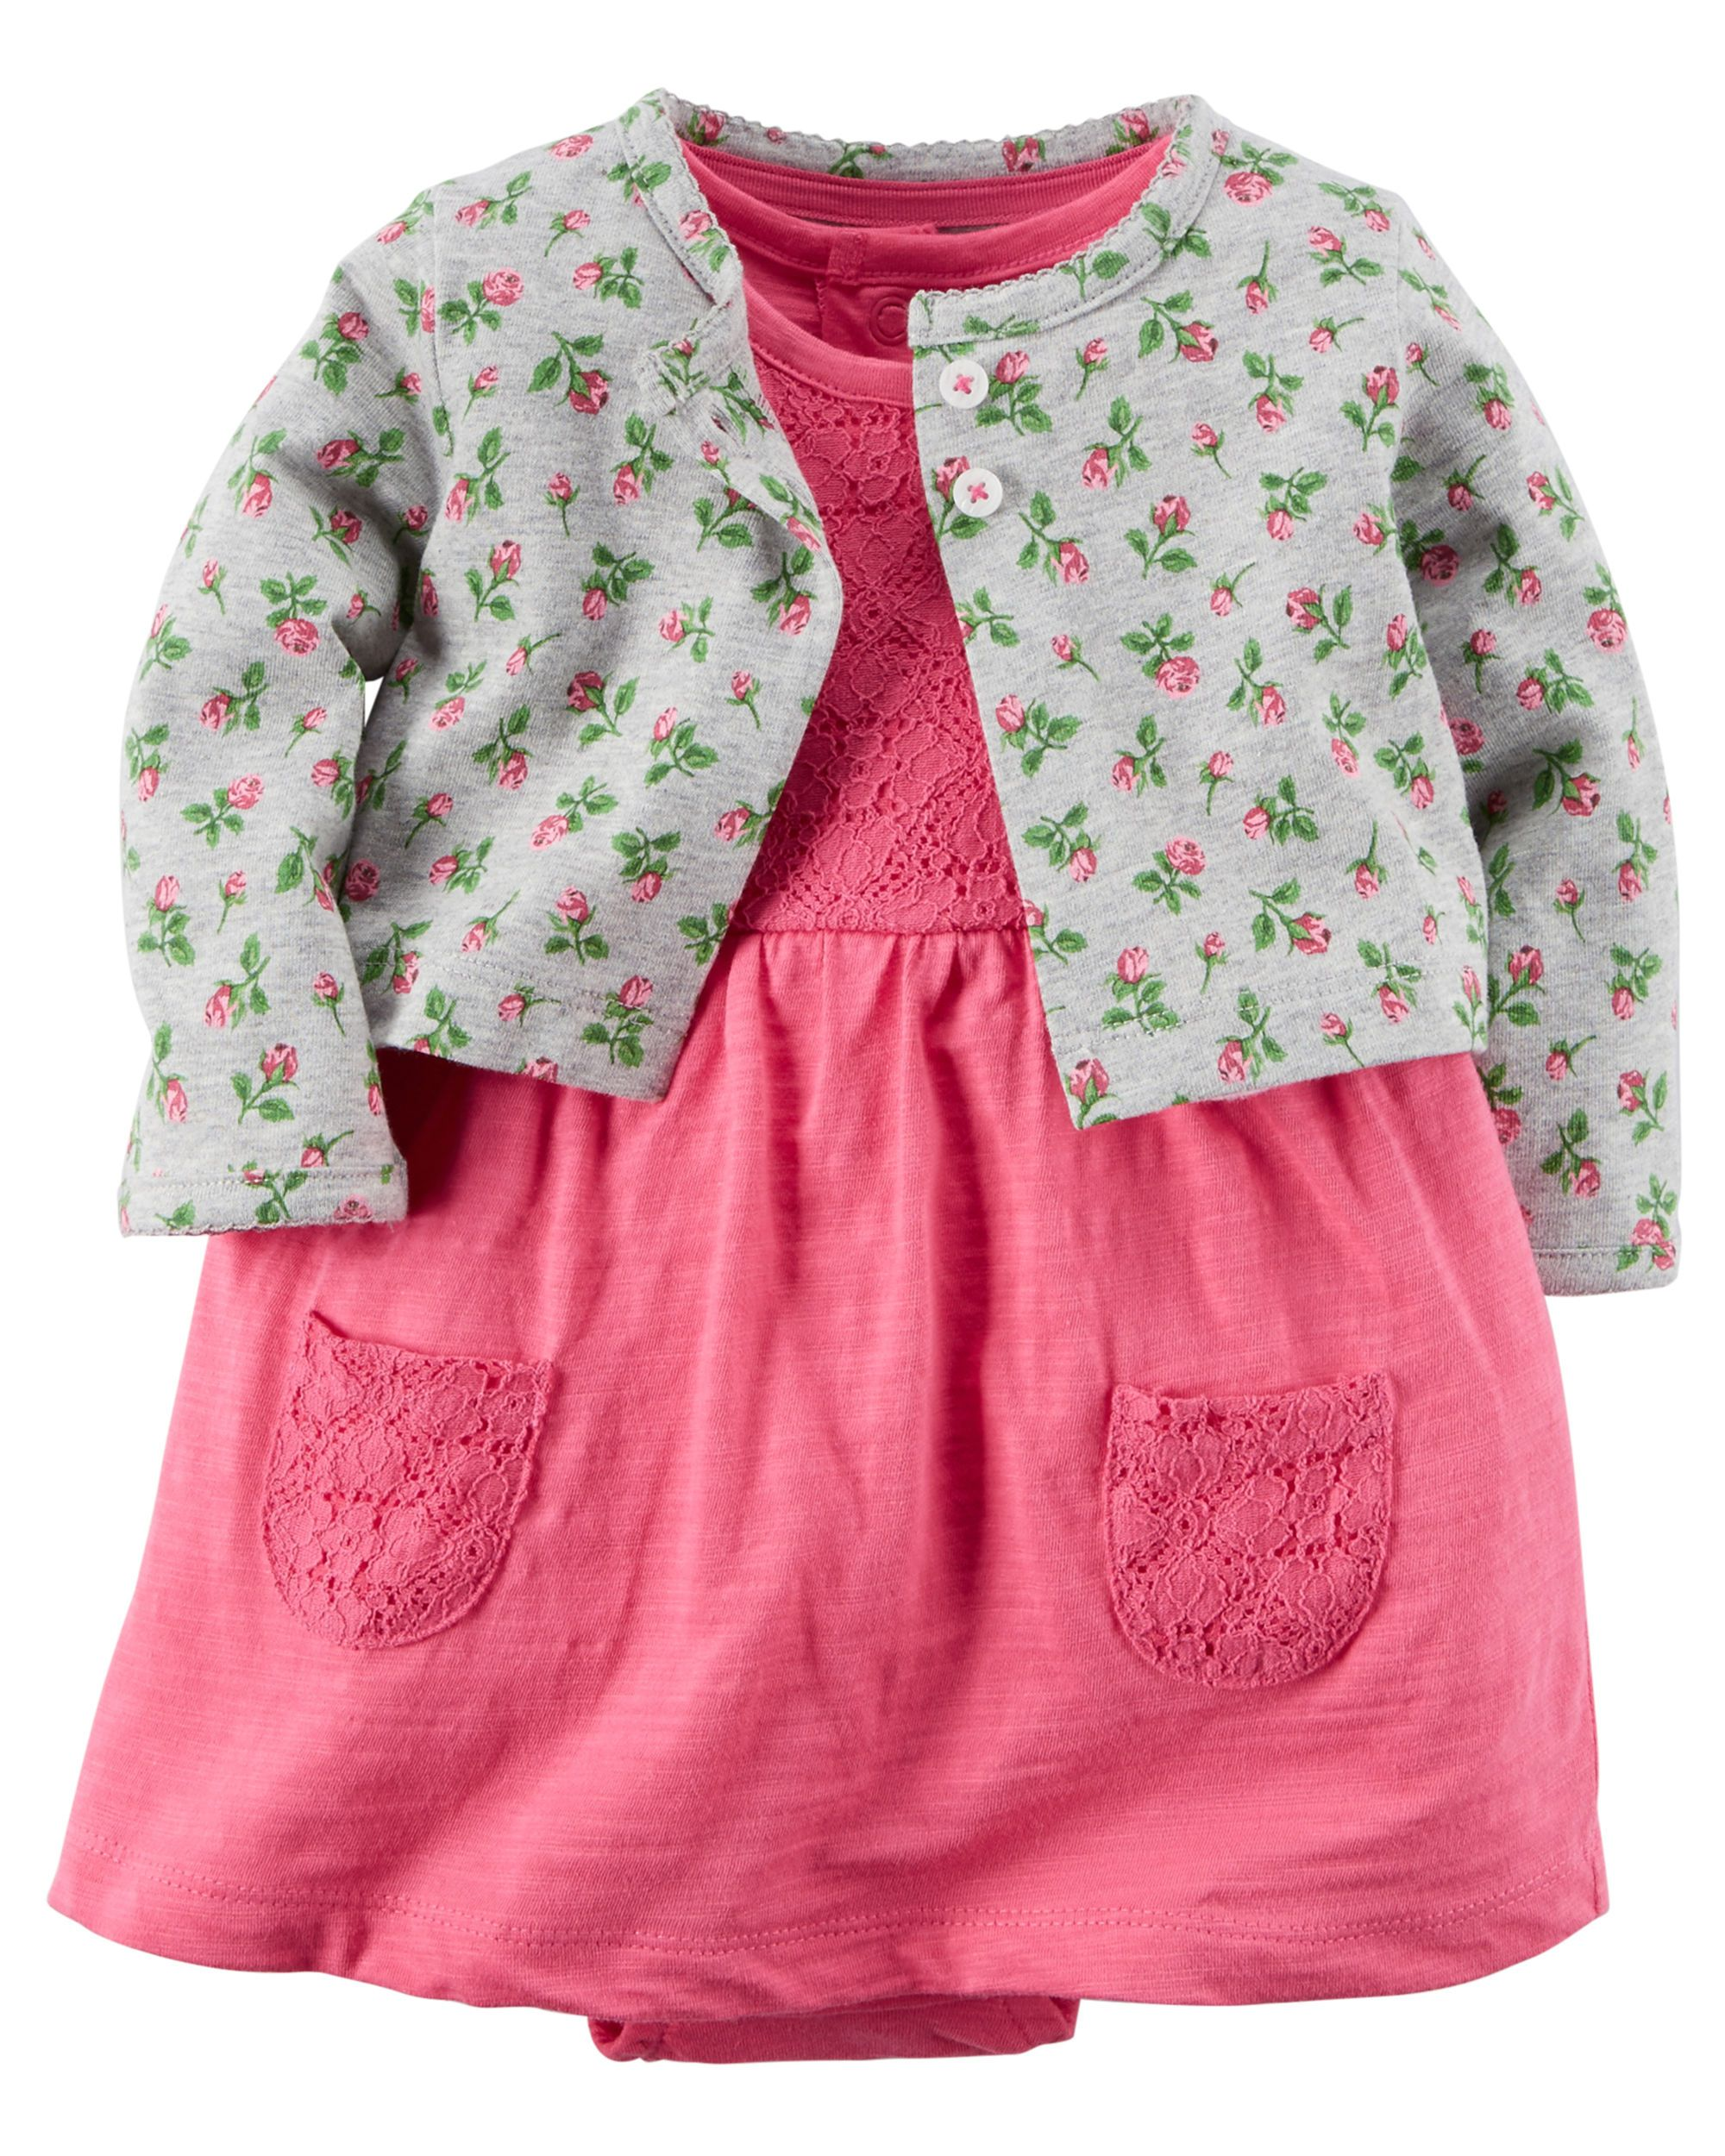 Carters Baby Girls Floral Bodysuit Dress Cardigan Set